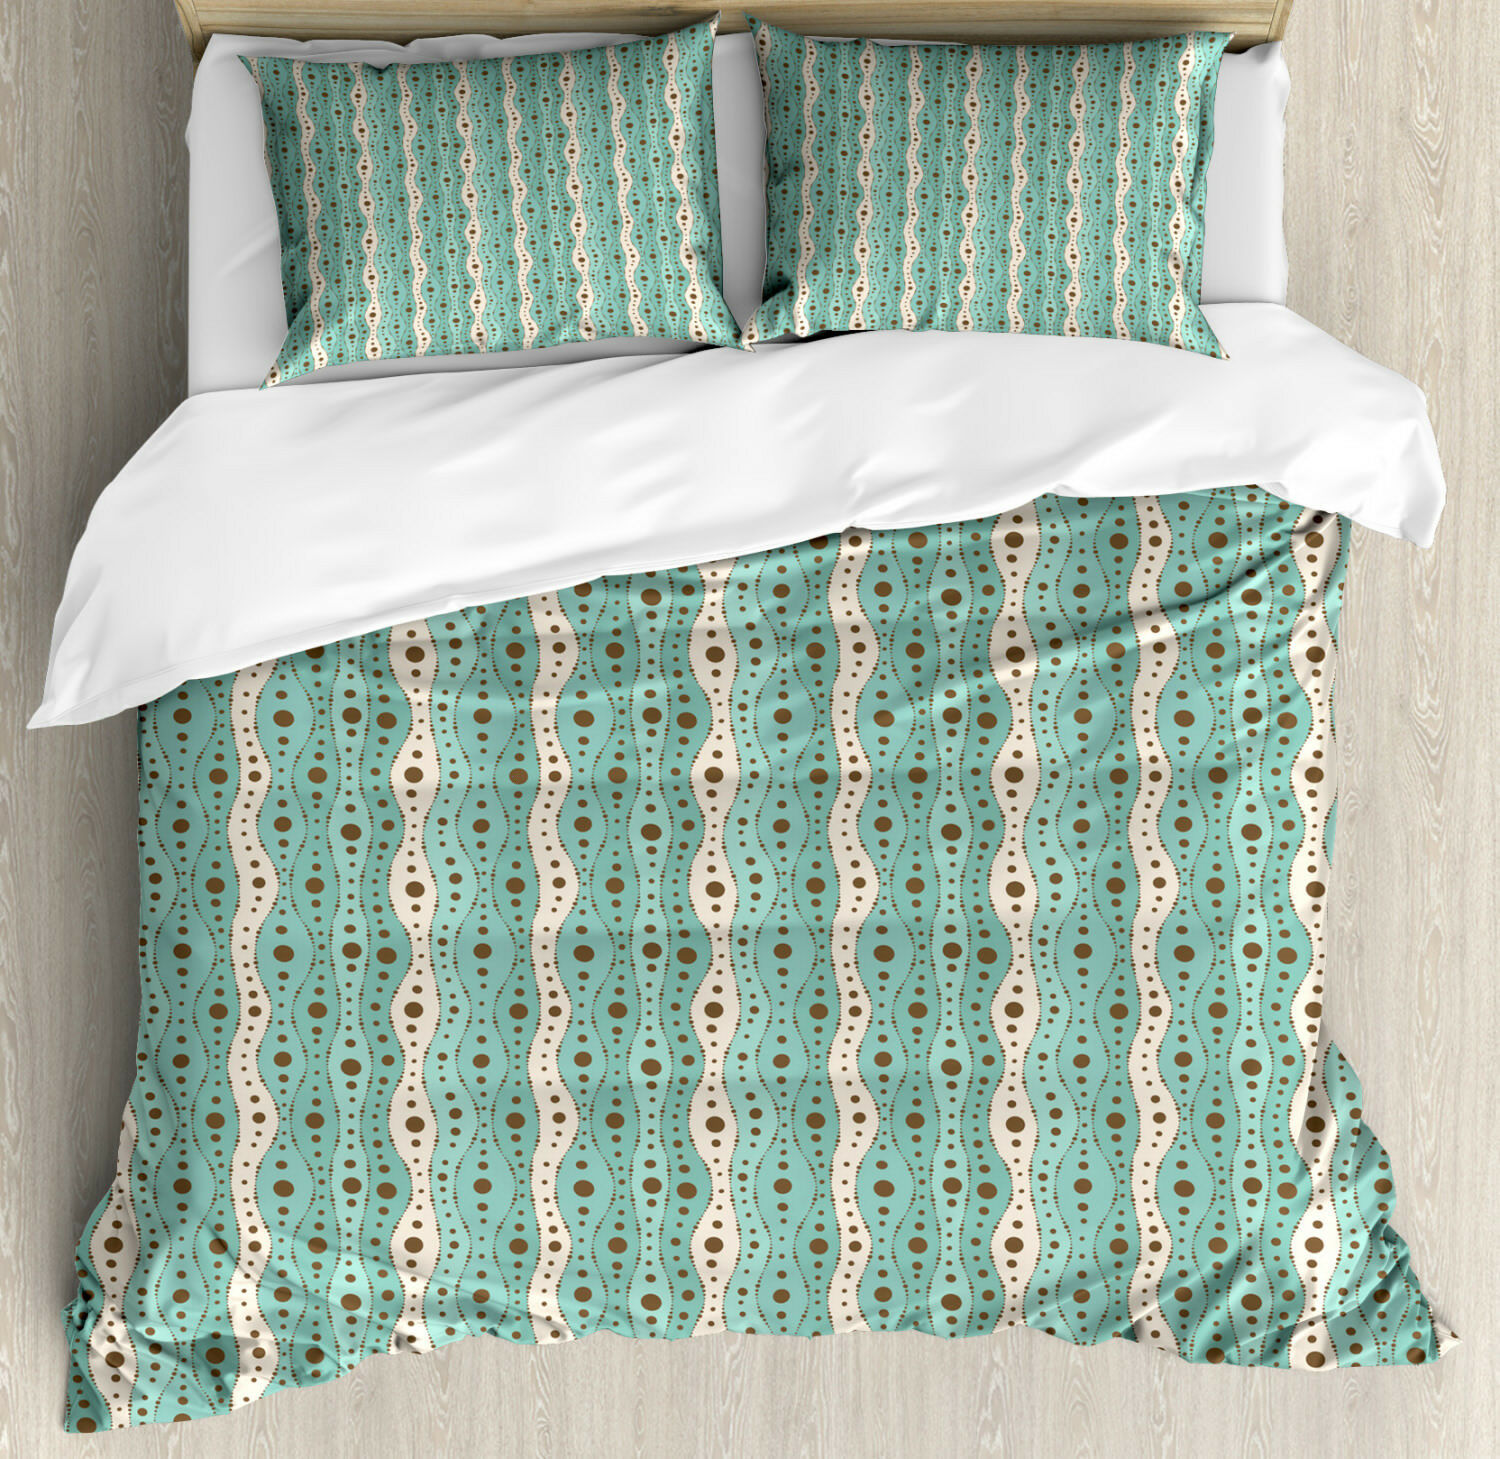 Turquoise Duvet Cover Set with Pillow Shams Traditional Polka Dot Print